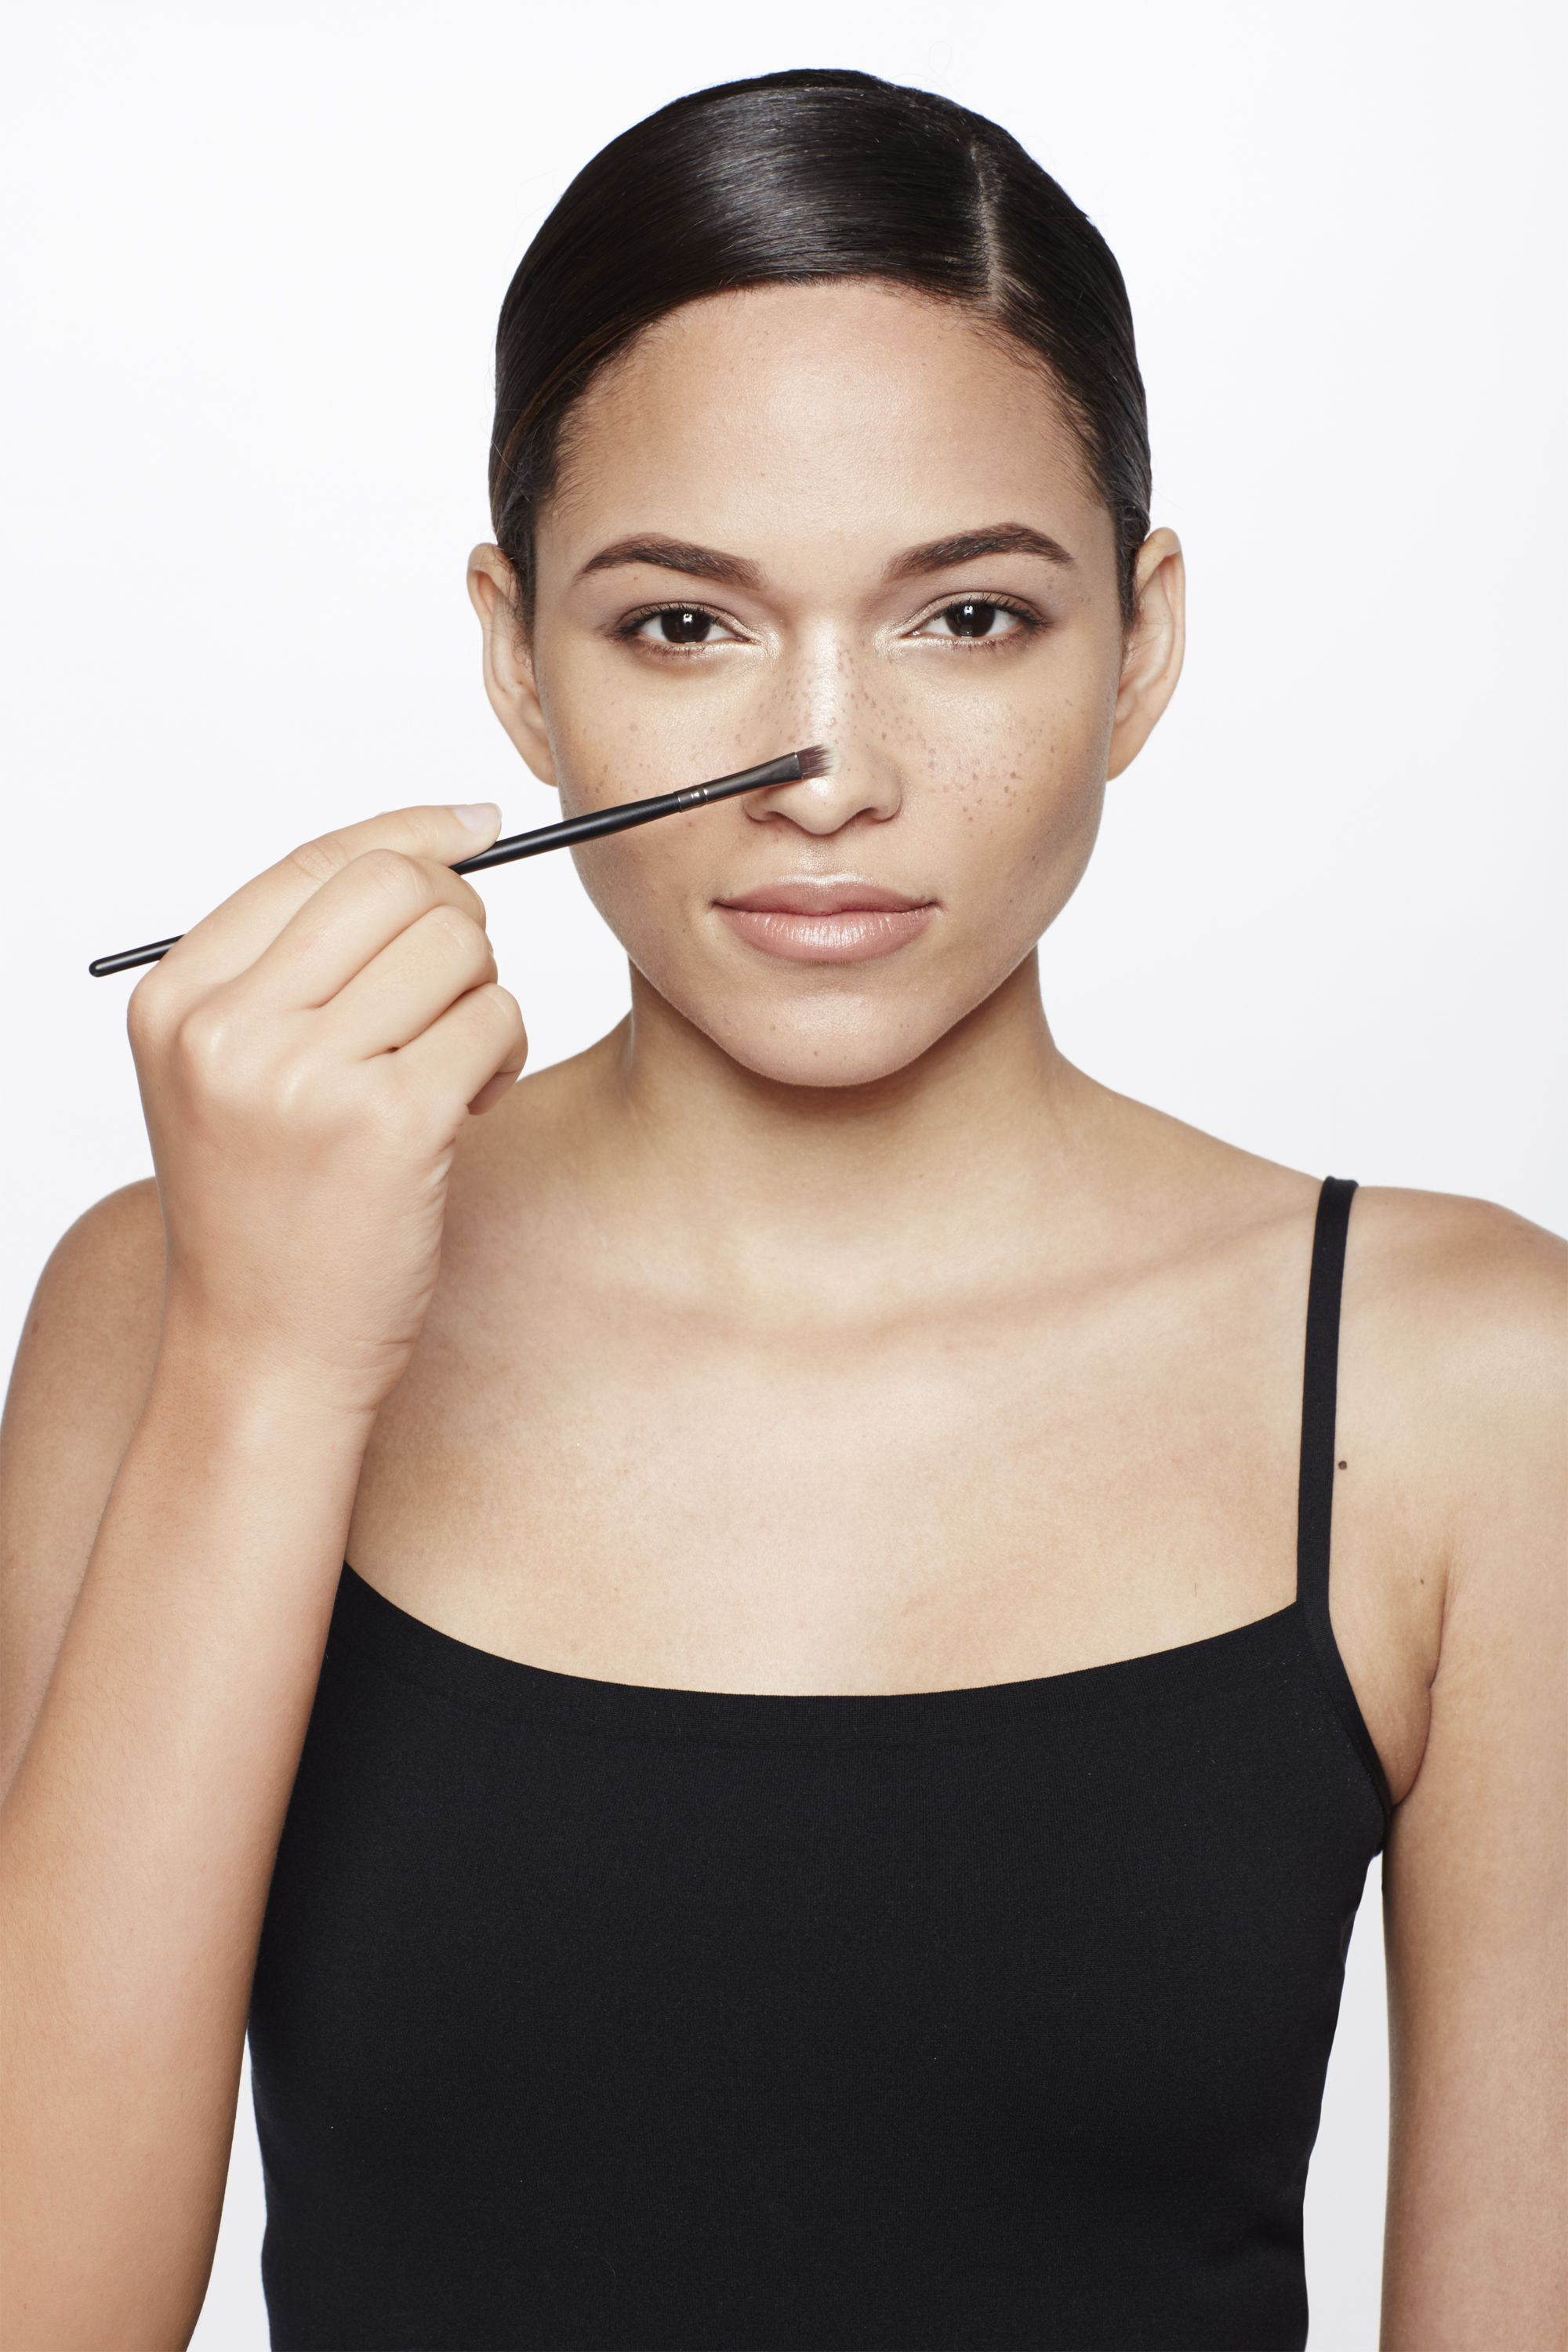 """<p>Refining the shape of your nose is as easy as drawing a narrow line with a light powder highlighter like <a href=""""http://www.lorealparisusa.com/en/products/makeup/face/blush/true-match-lumi-powder-glow-illuminator.aspx"""" target=""""_blank"""">L'Oréal Paris True Match Lumi Powder Glow Illuminator</a> from the top to the tip using a flat eye shadow brush. Jose's rule: """"The skinnier the line, the narrower your nose will look.""""</p>"""